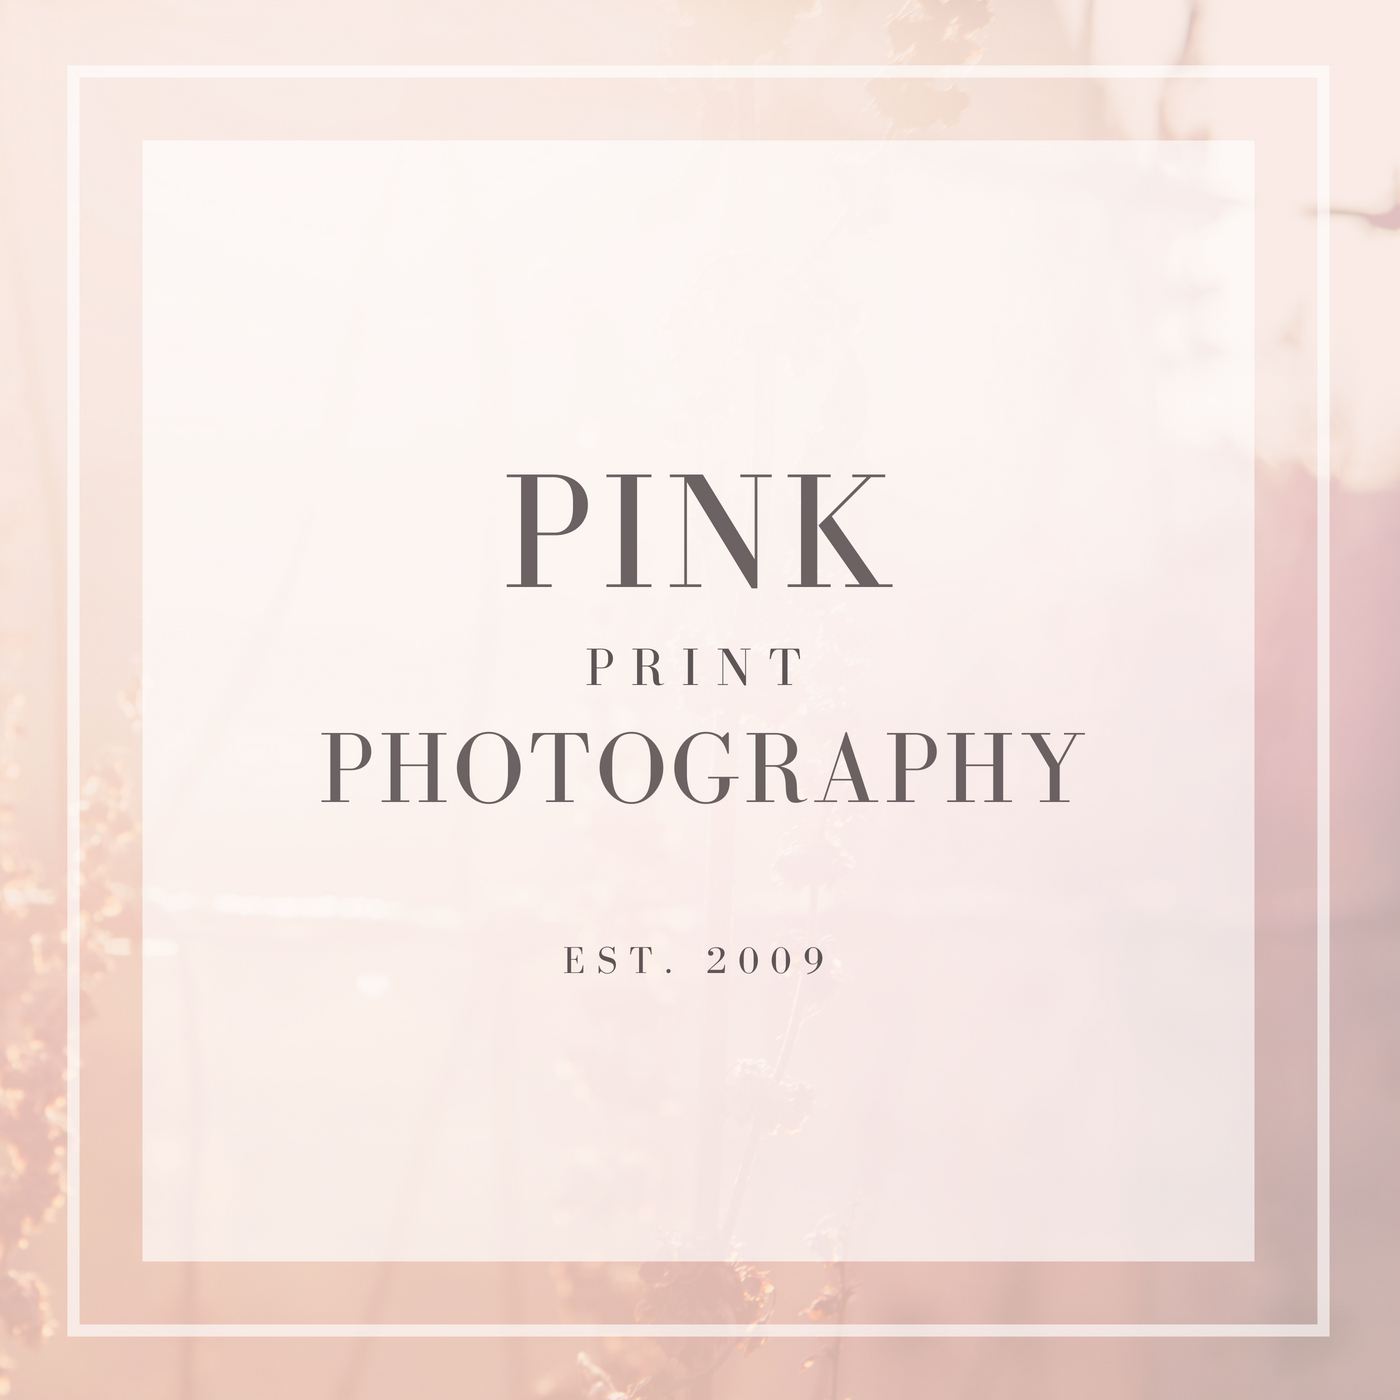 Pink Print Photography